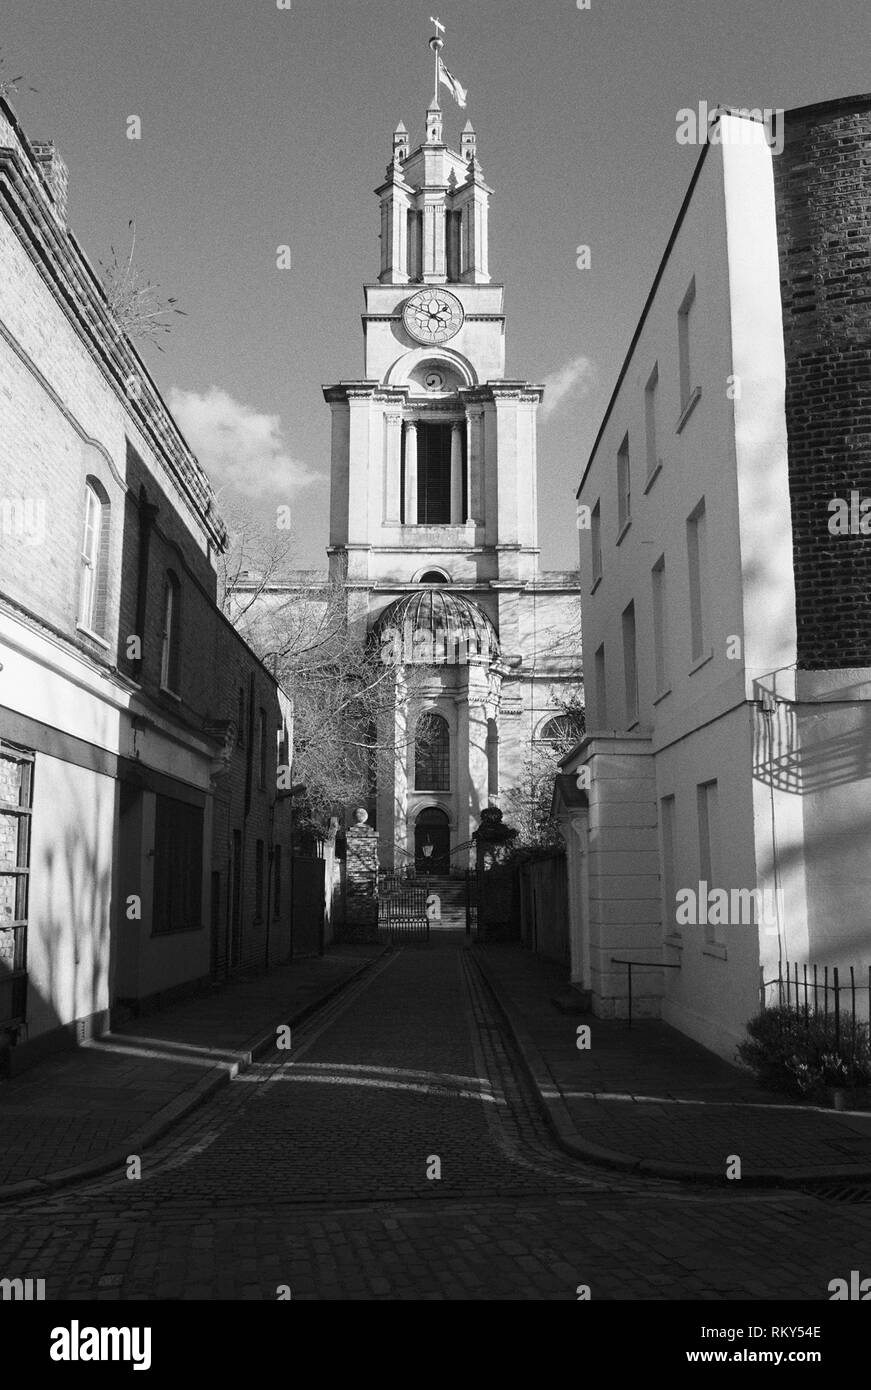 St Anne's church tower, Limehouse, East London, from Newell Street, looking down St Anne's Passage - Stock Image